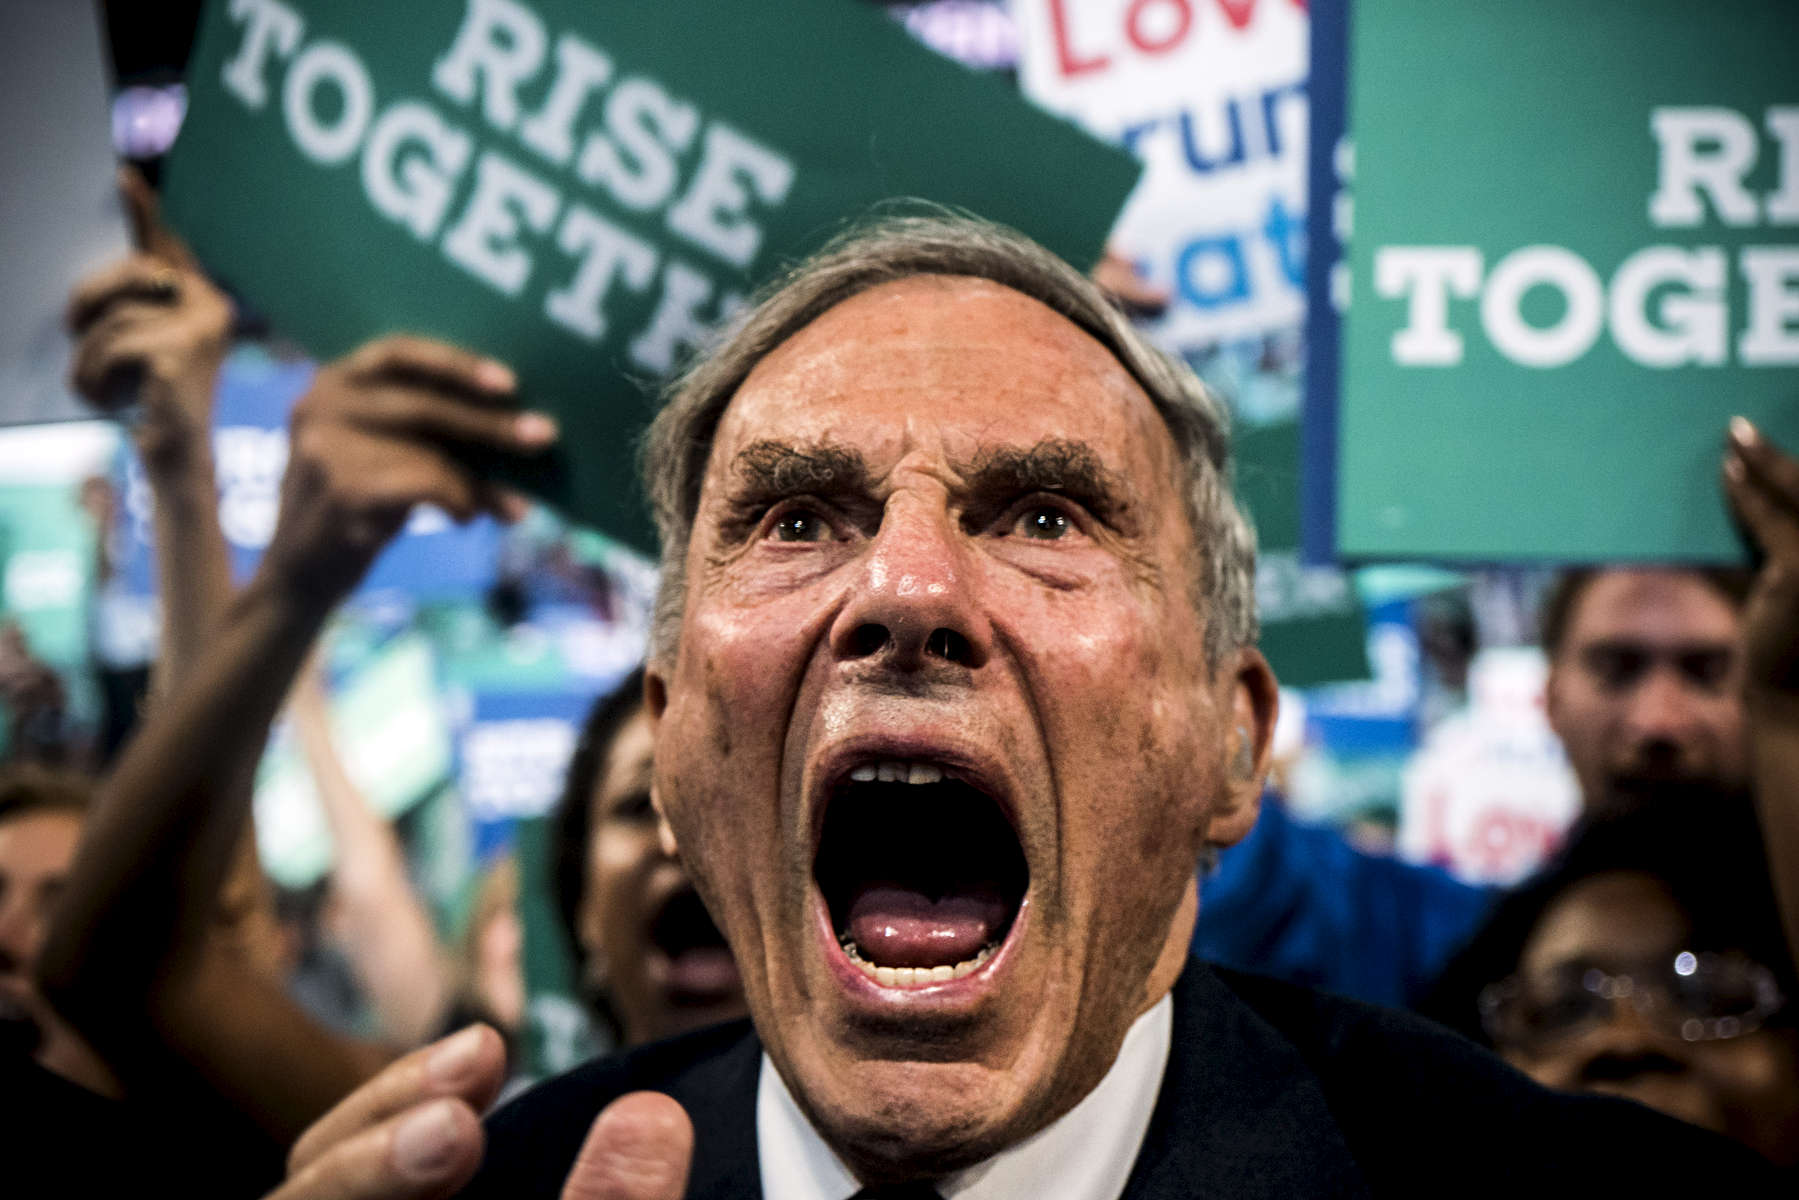 Philadelphia, PA - July 25, 2016: Scenes from the Democratic National Convention in Philadelphia, PA.